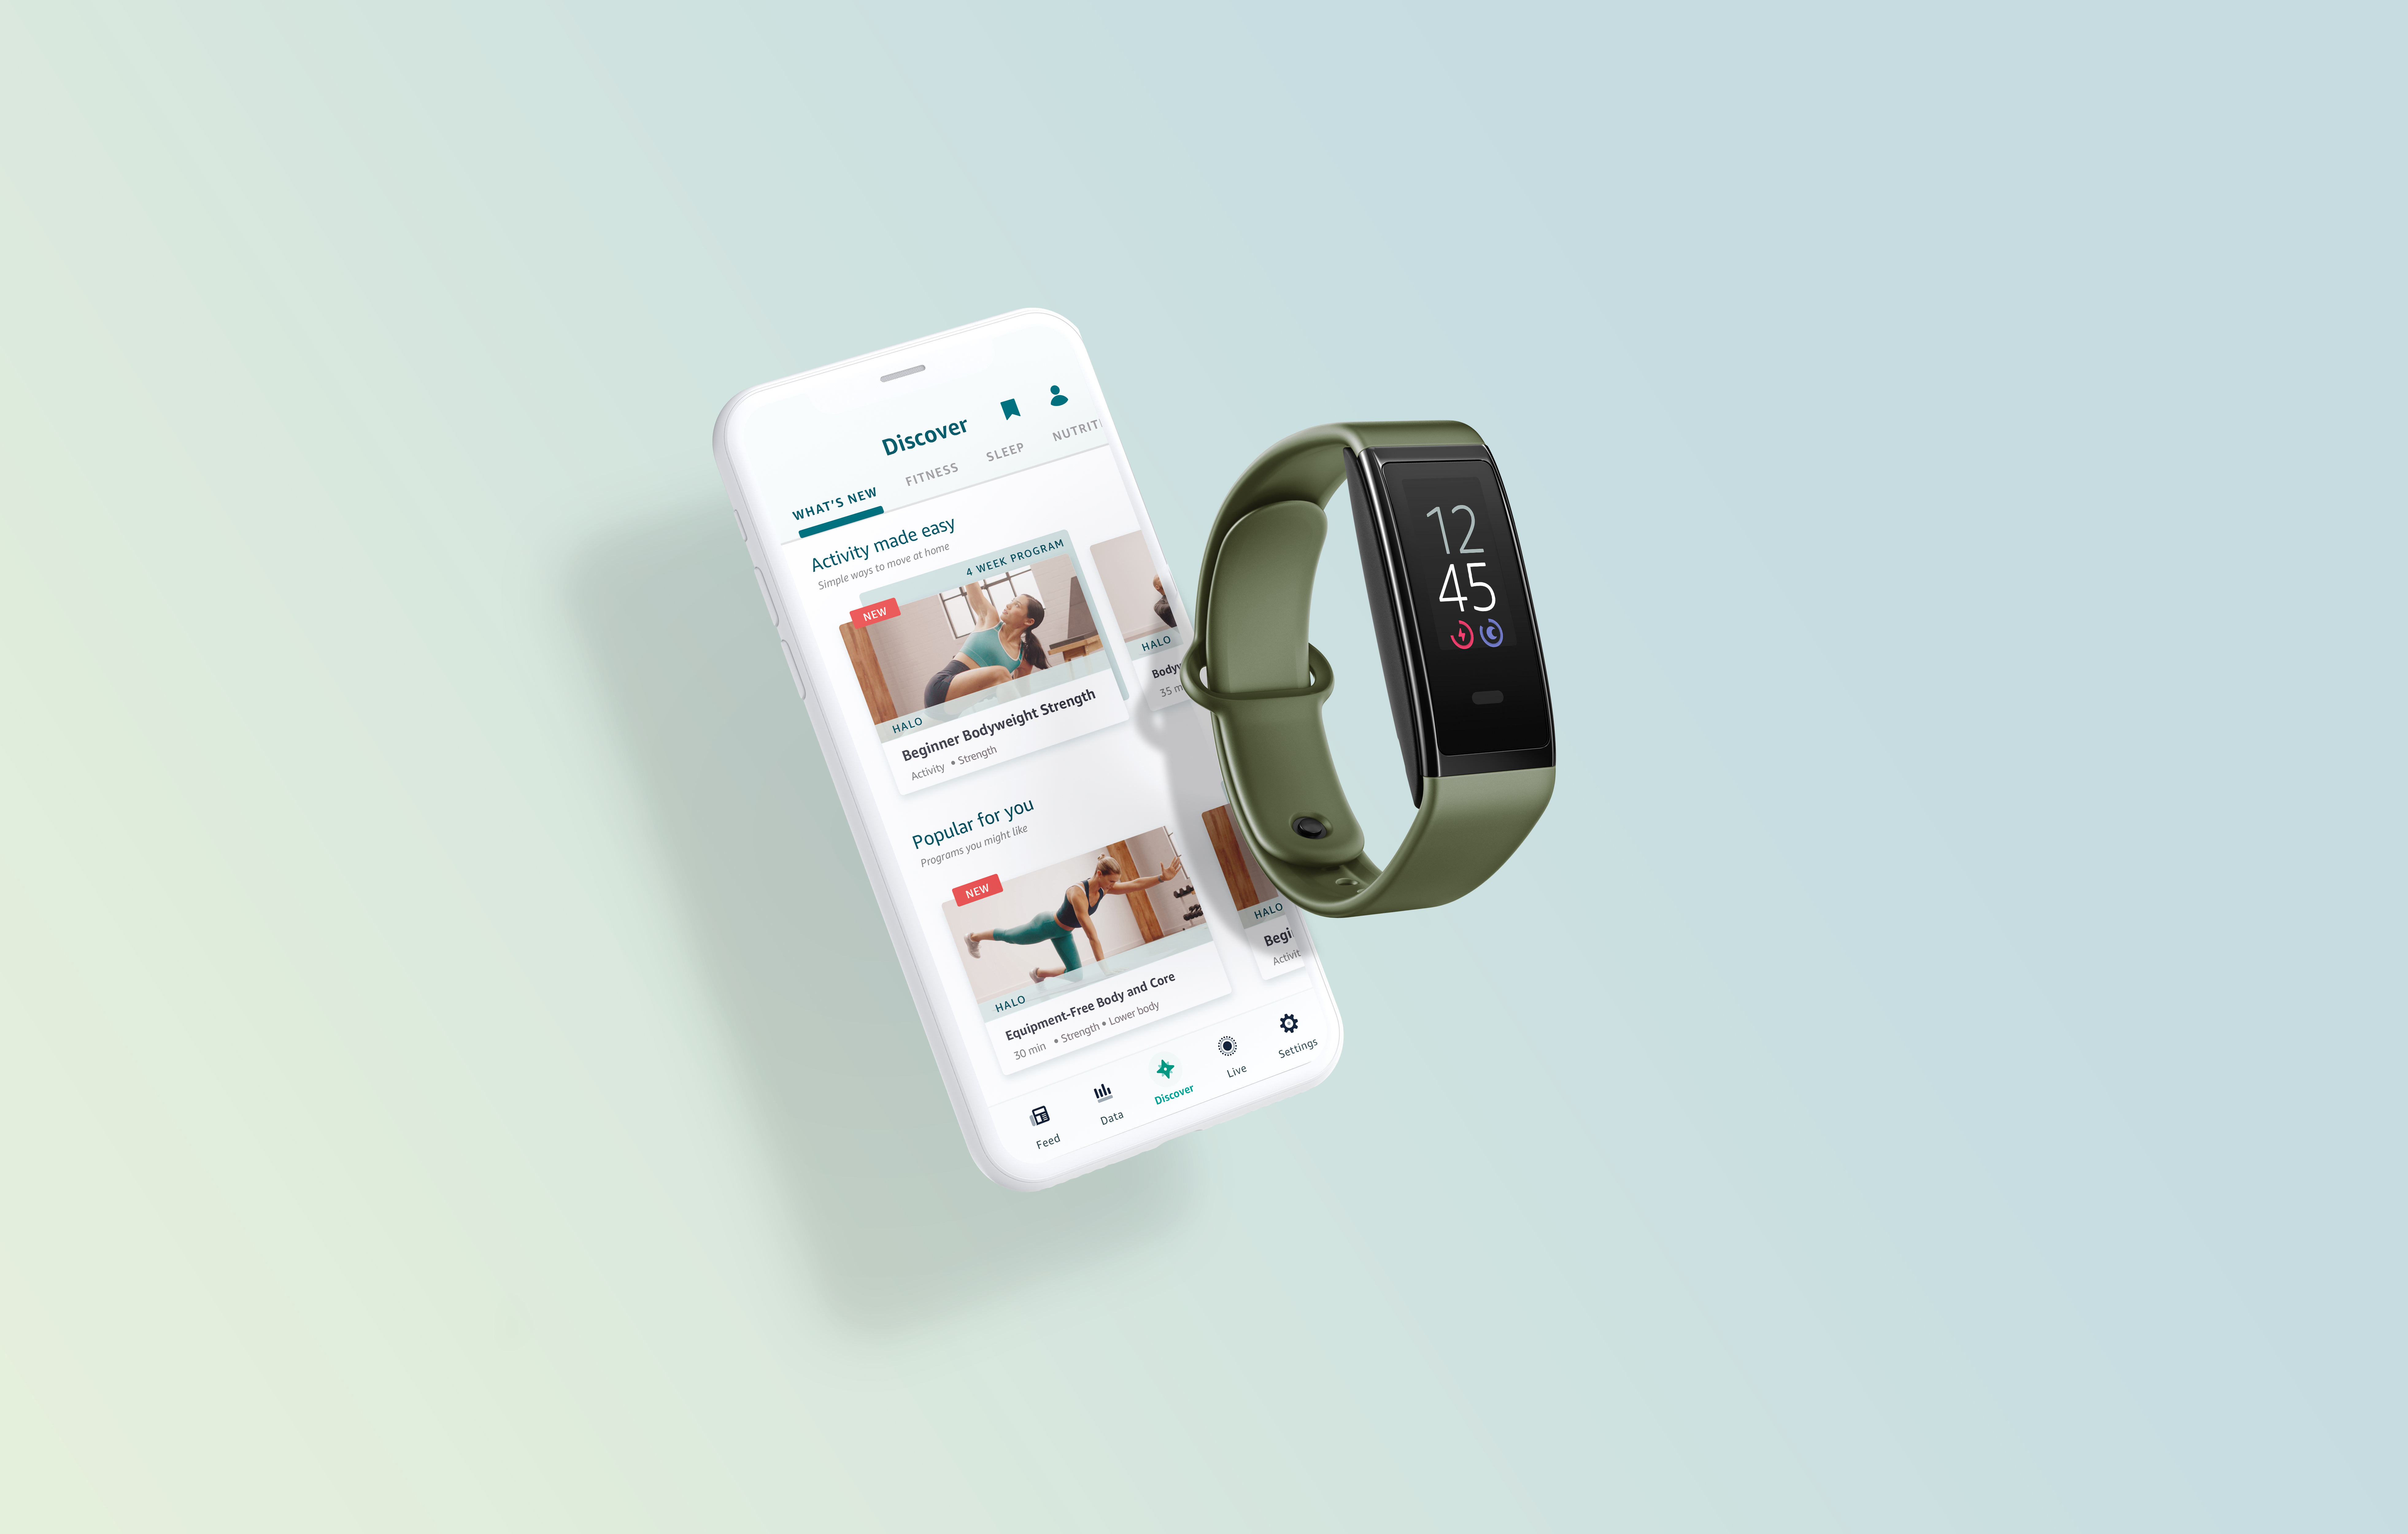 The Halo View will work with Amazon's Halo app and fitness service.